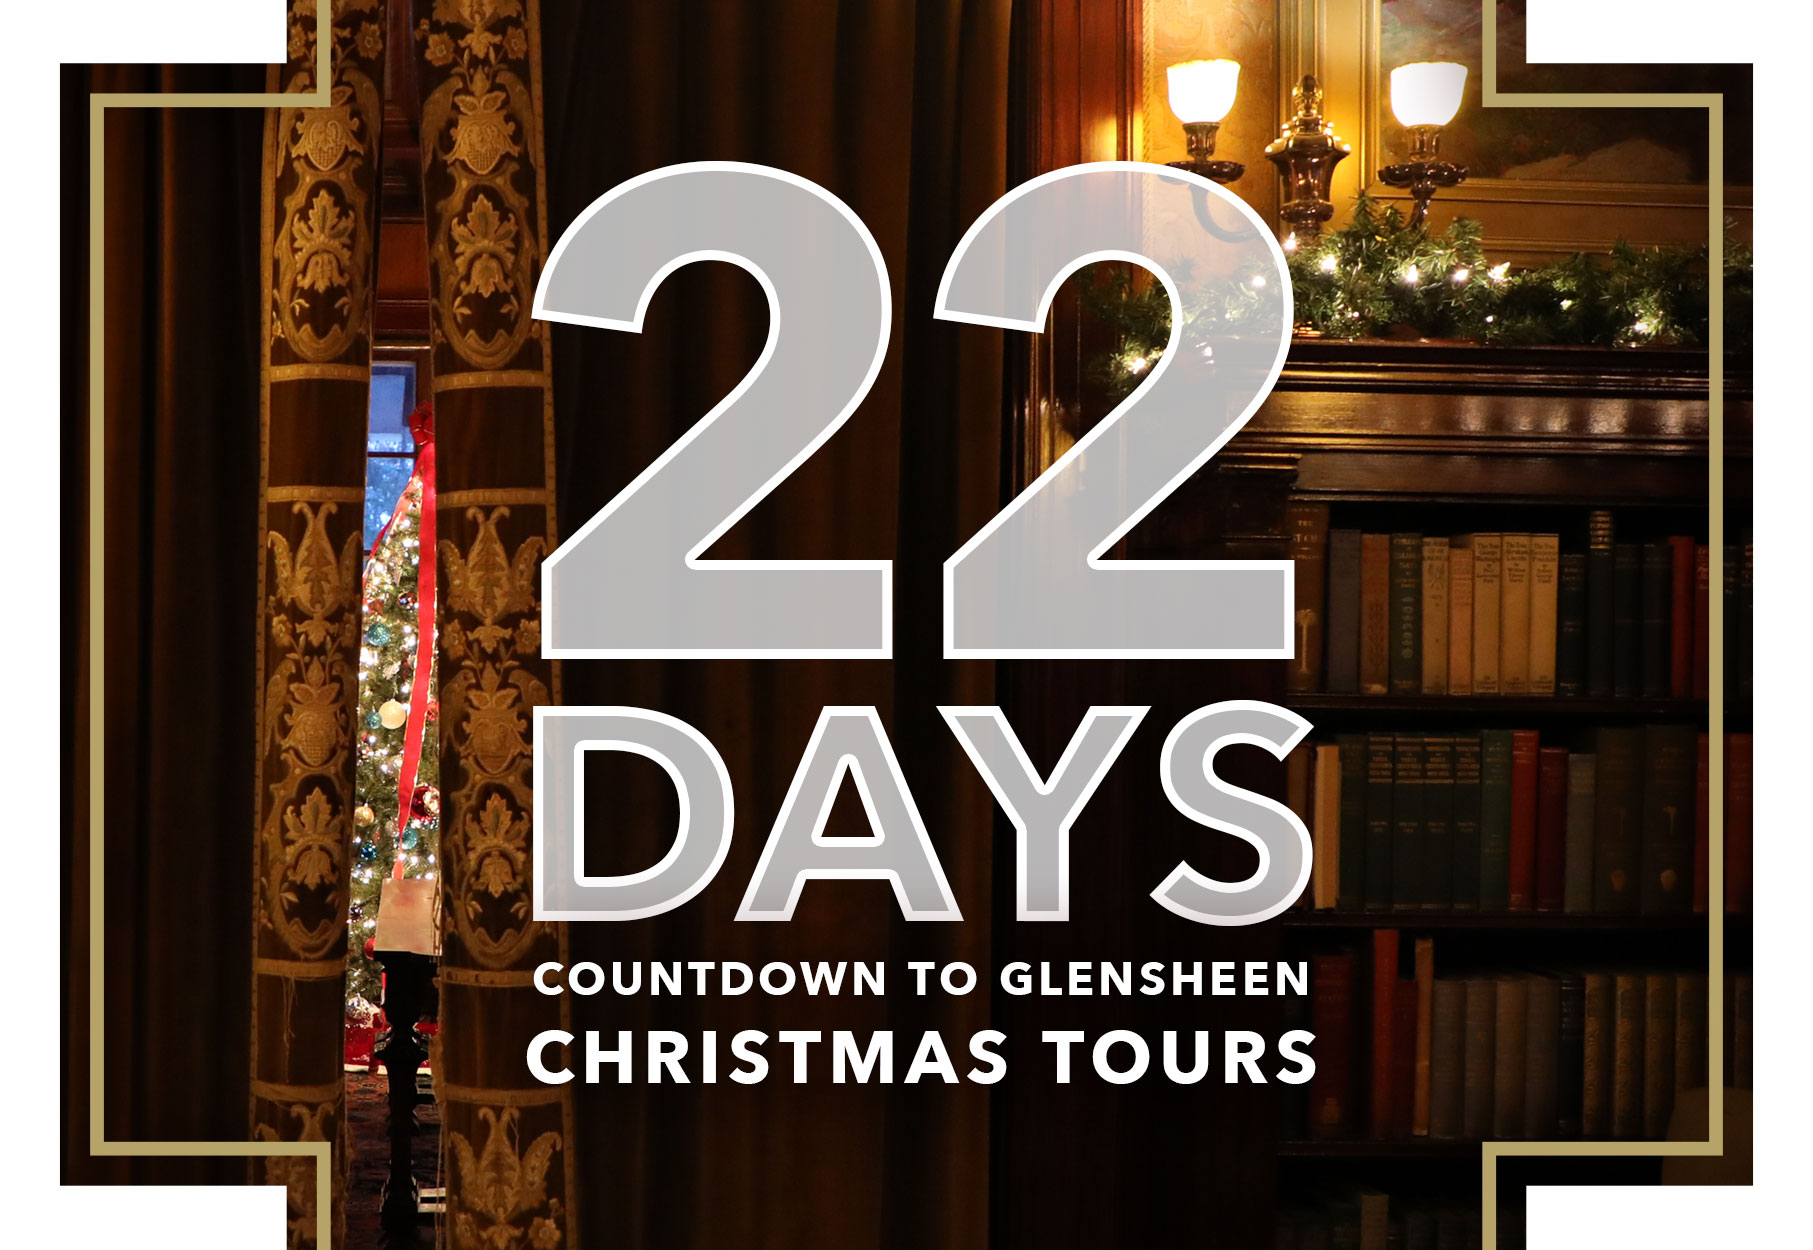 How Many Days Till Christmas 2019.22 Days Until Christmas Tours Glensheen